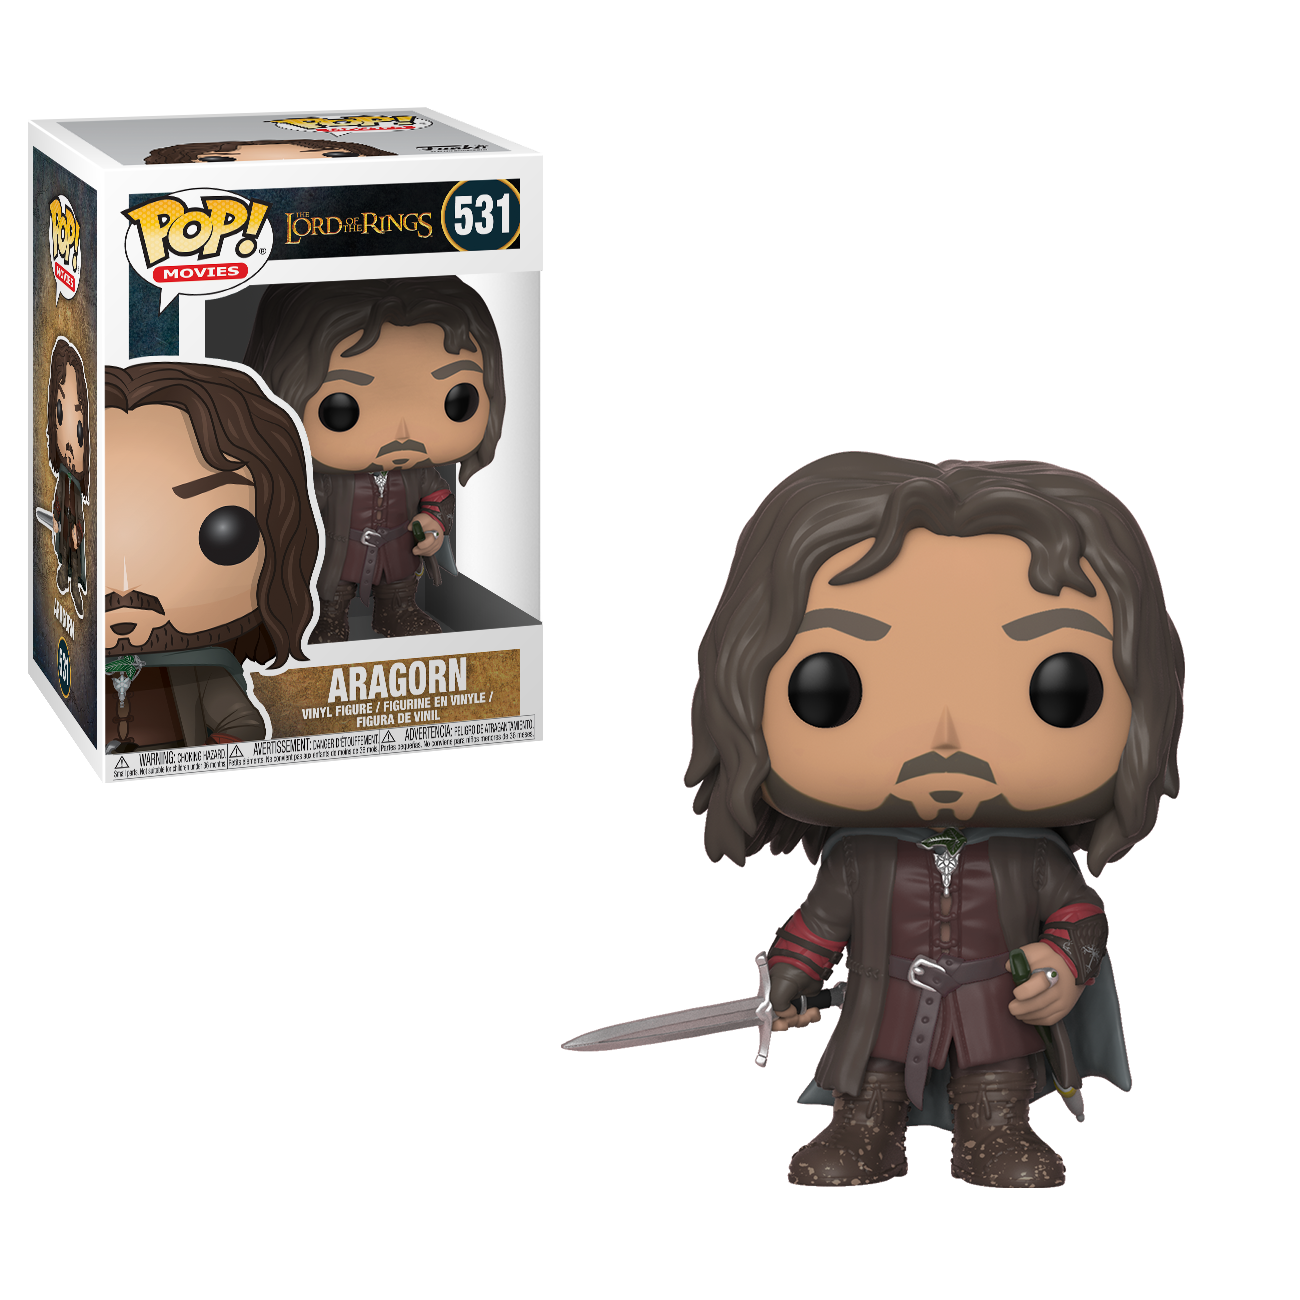 POP! Lord Of The Rings Aragorn